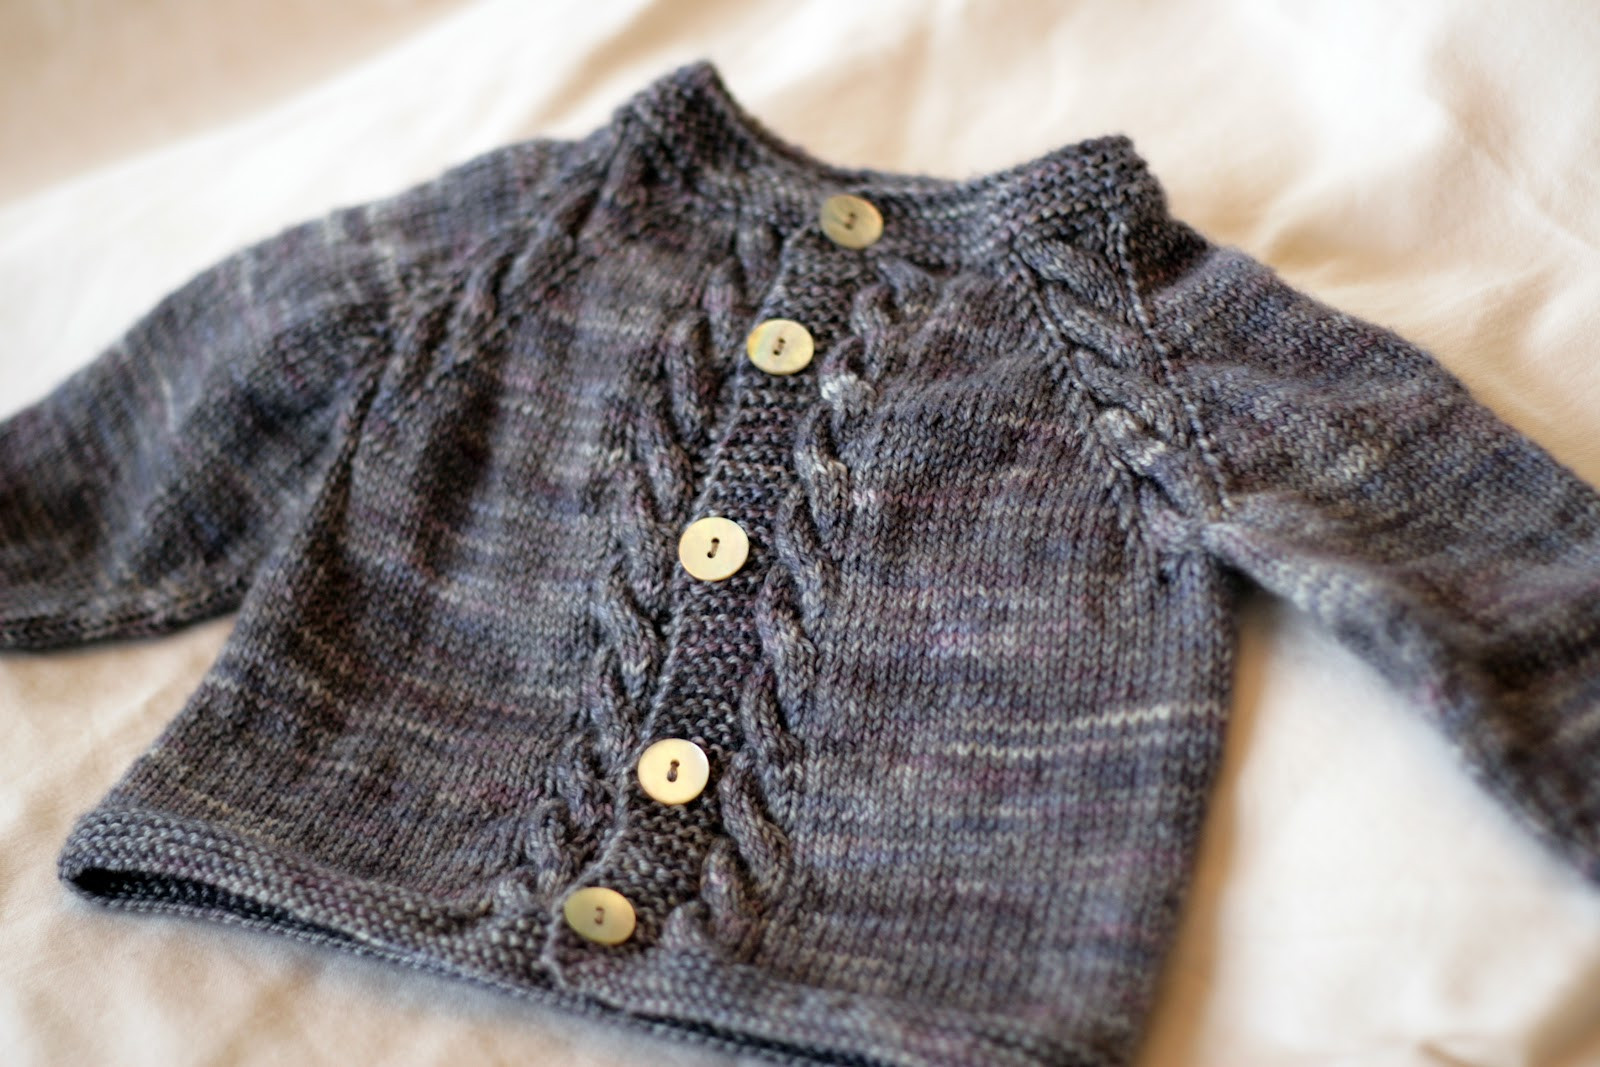 Sweater Knitting Patterns Elegant Getting Ready for Winter Pretty Knitted Baby Sweater Patterns Of Amazing 42 Models Sweater Knitting Patterns